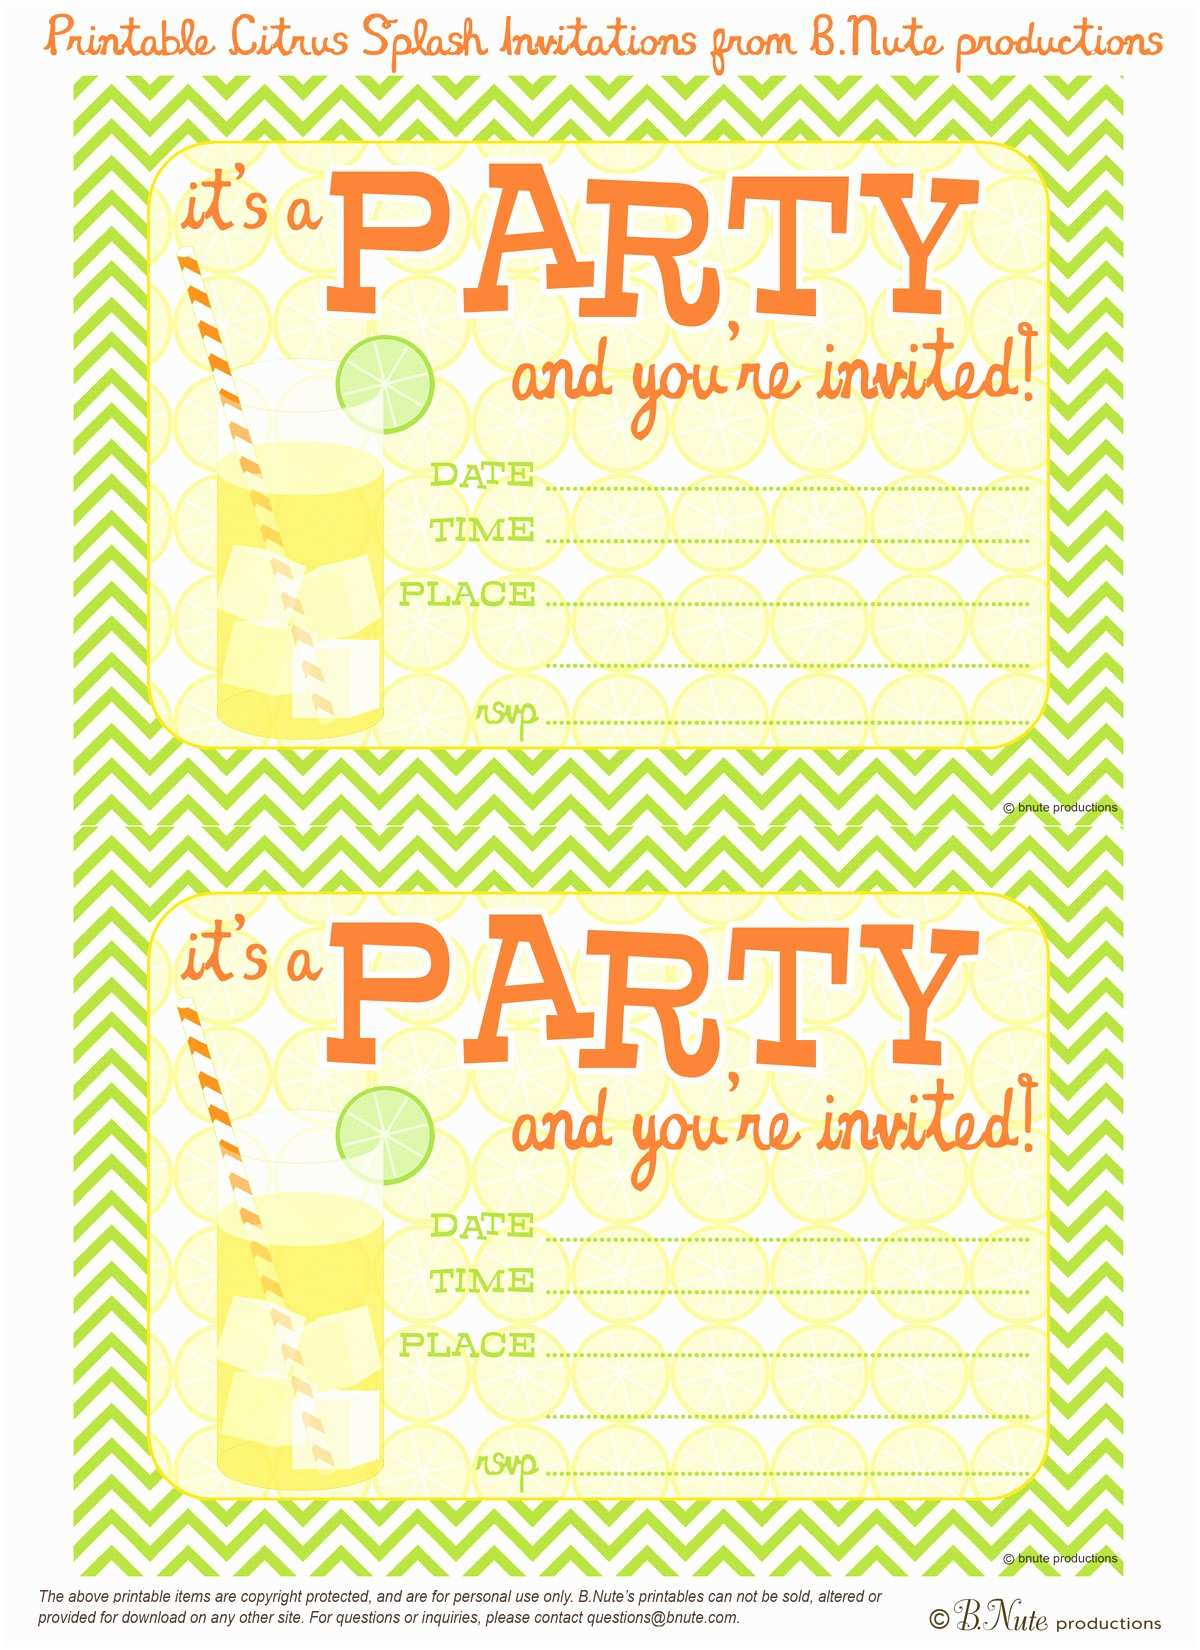 Printable Birthday Party Invitations Bnute Productions May 2012